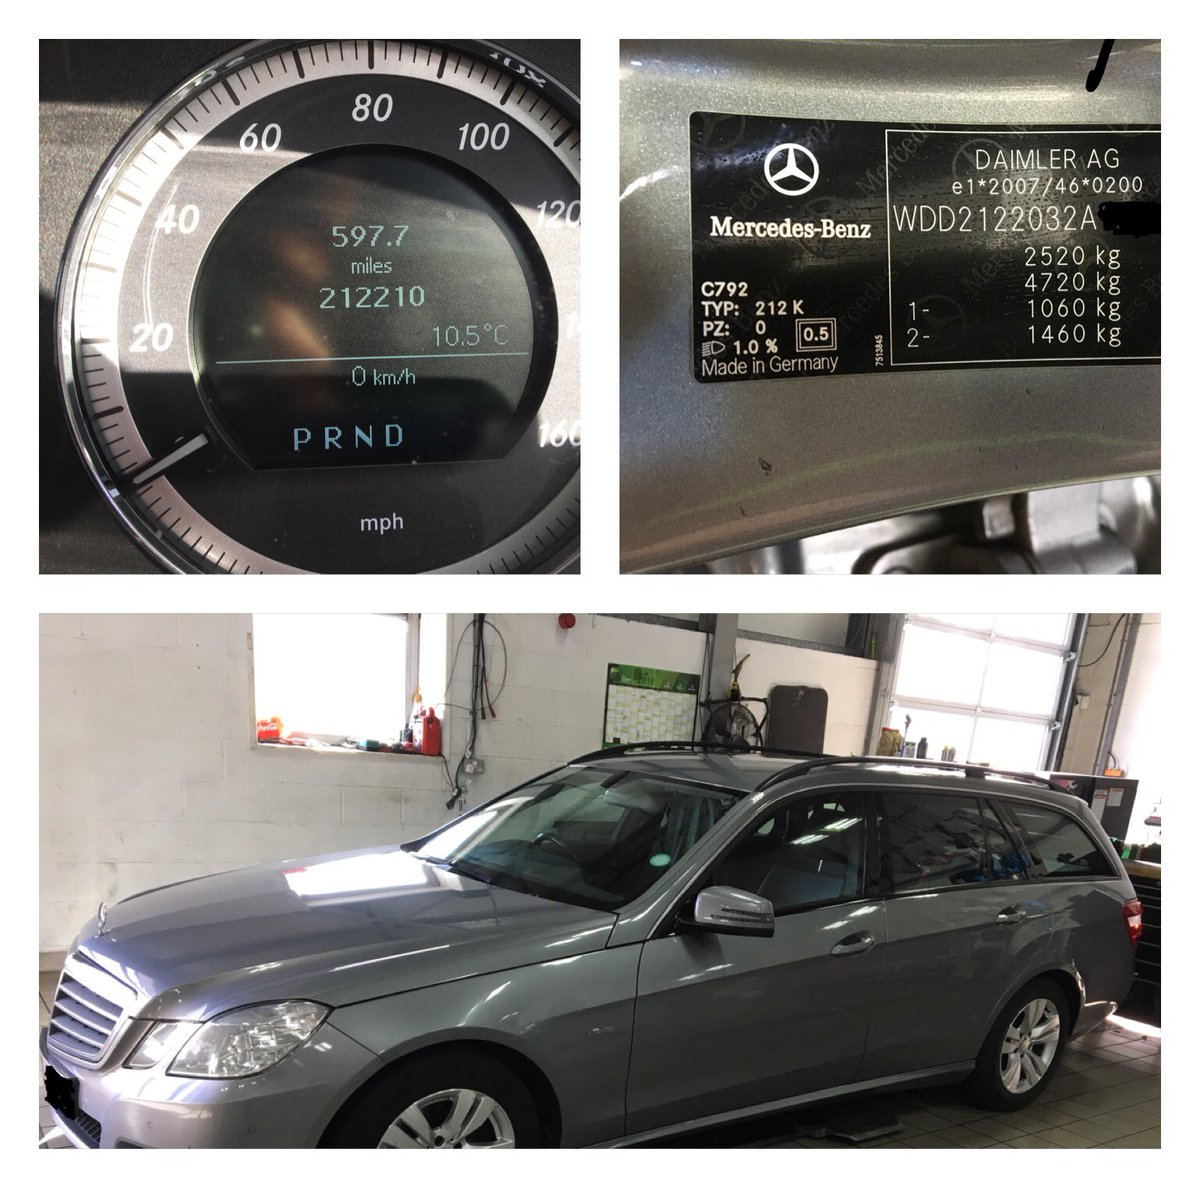 """Mercedes-Benz on Twitter: """"Hi James, nice to hear from you again. We're very impressed you matched the mileage to your VIN. How has it been with motoring in ..."""